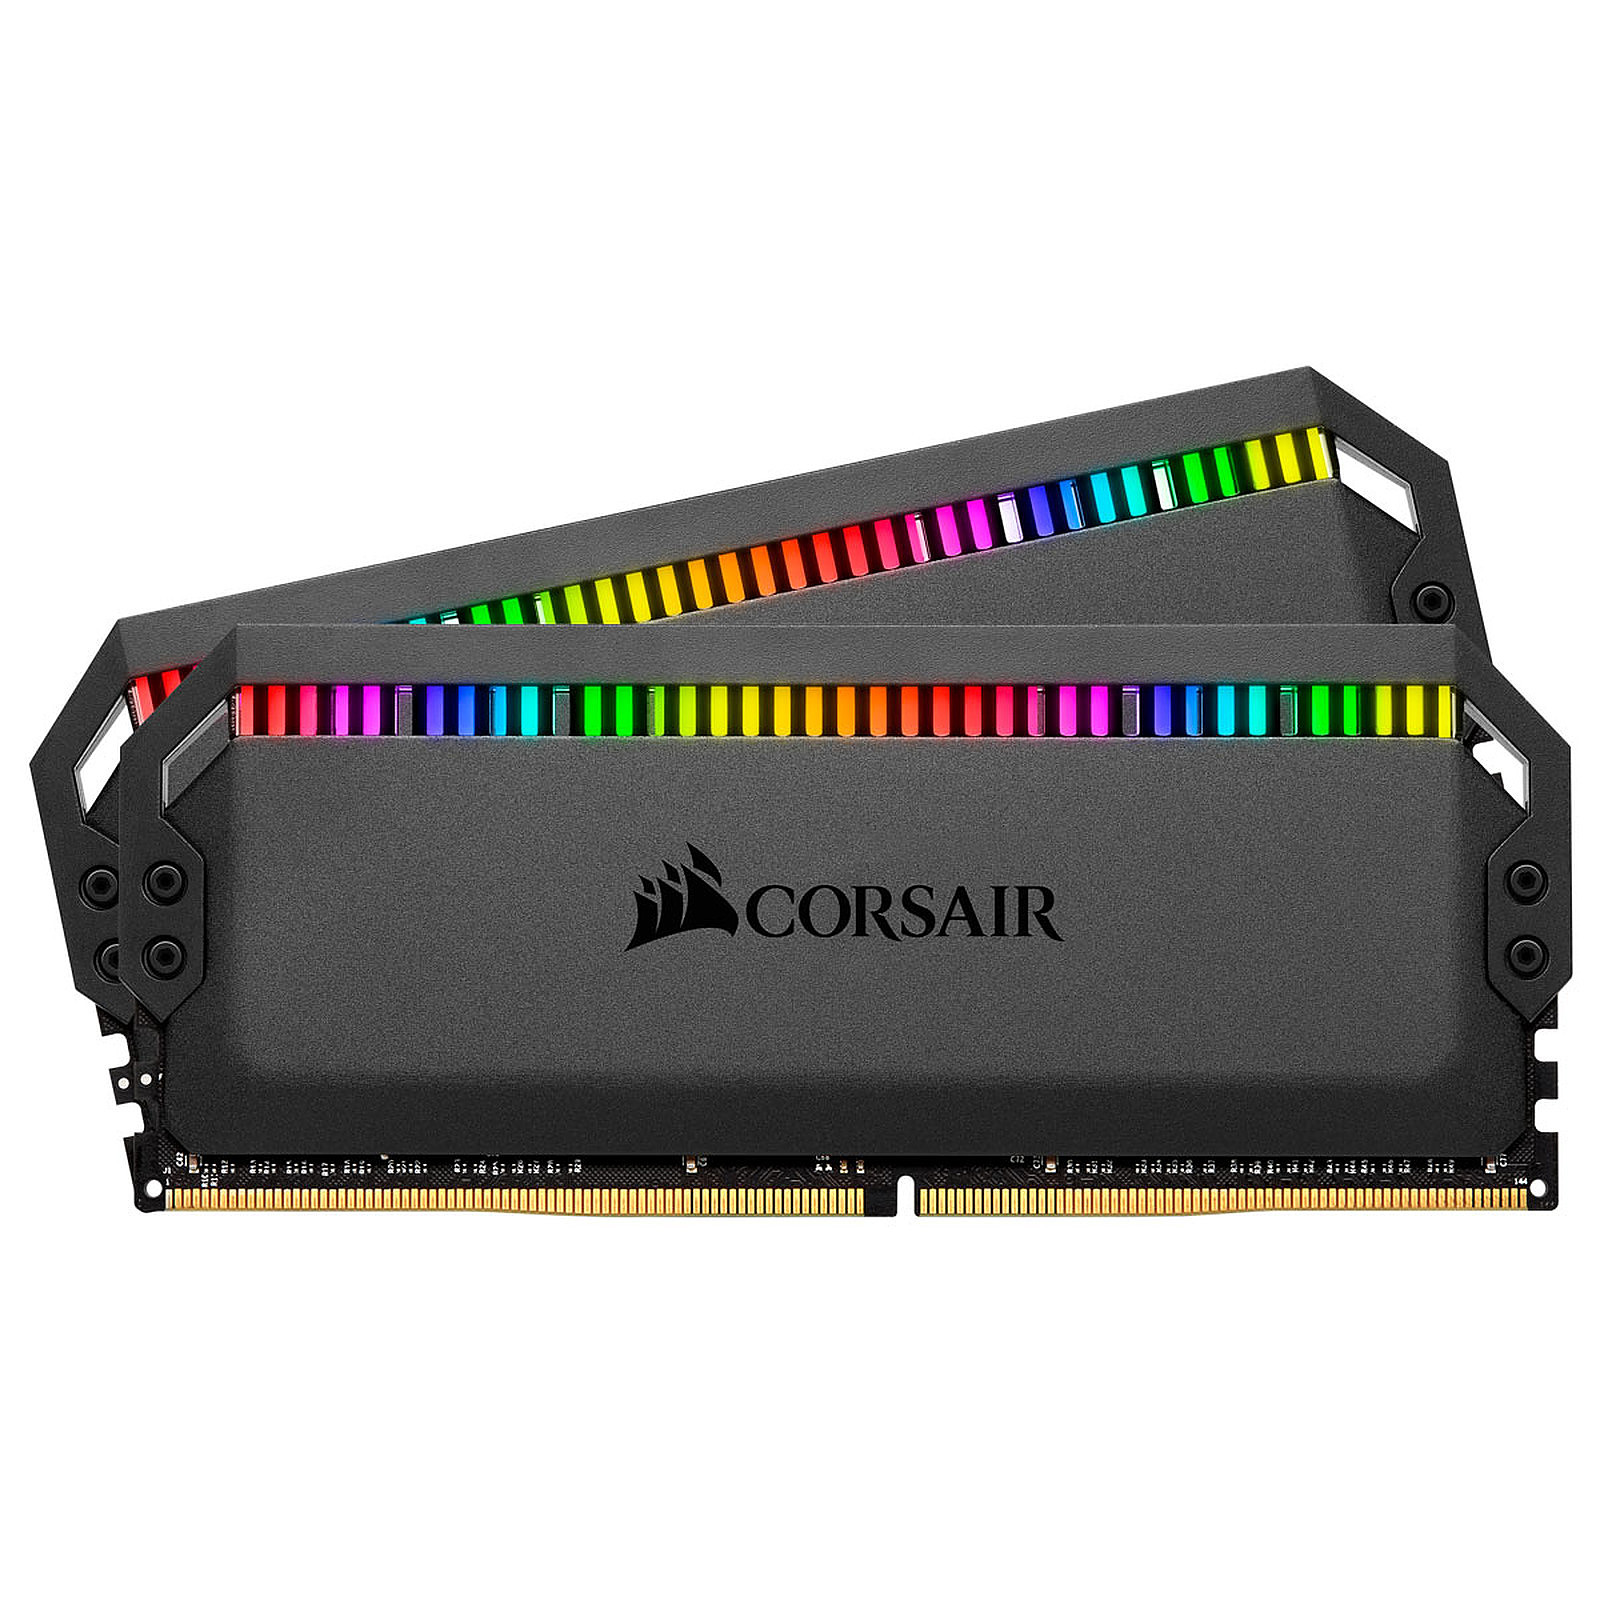 Corsair Dominator Platinum RGB 32 GB (2 x 16 GB) DDR4 3600 MHz CL18